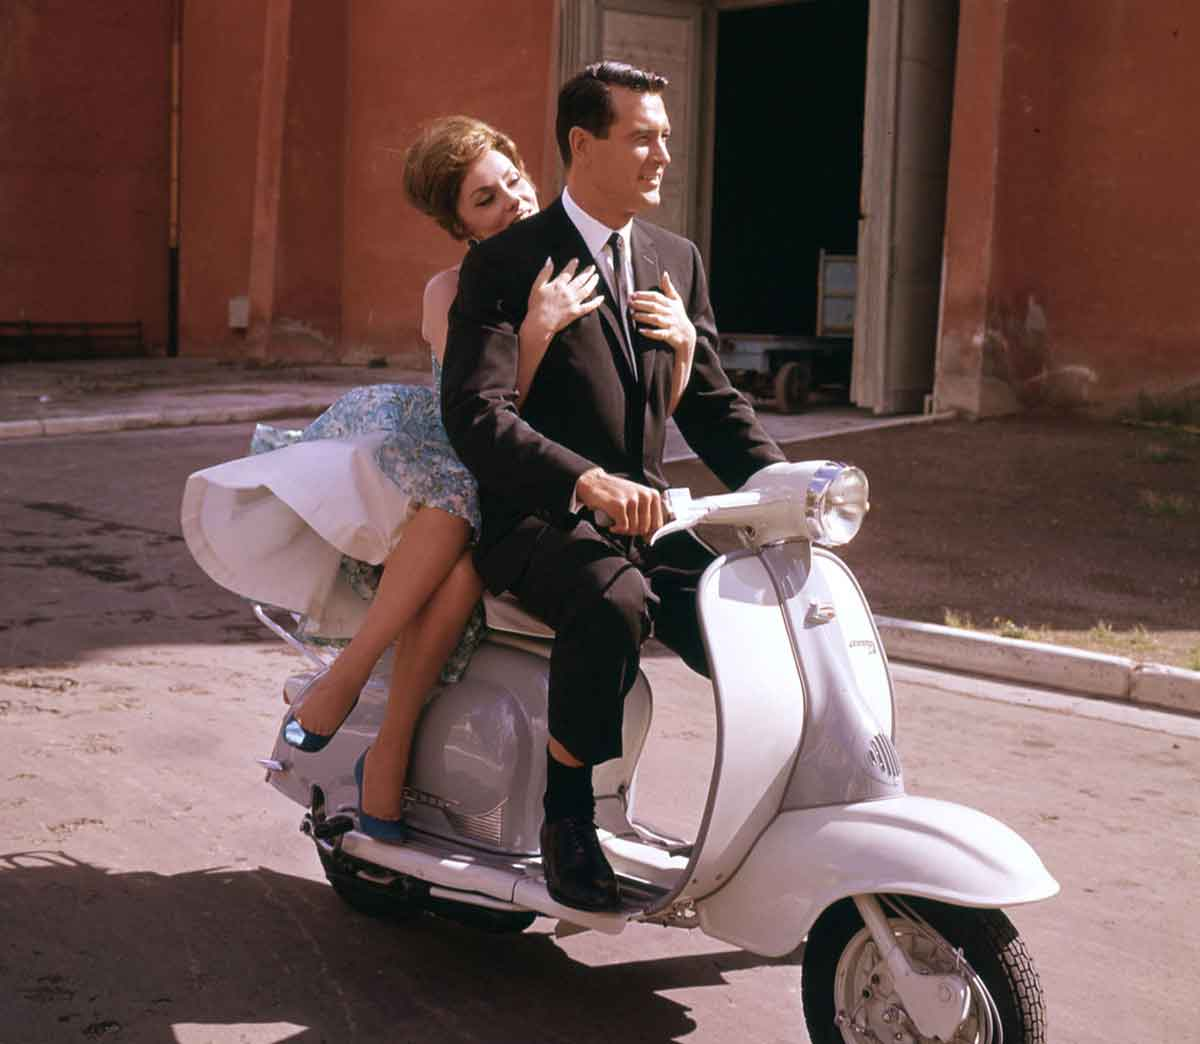 Rock-Hudson-and-Gina-Lollobrigida-ride-a-Vespa